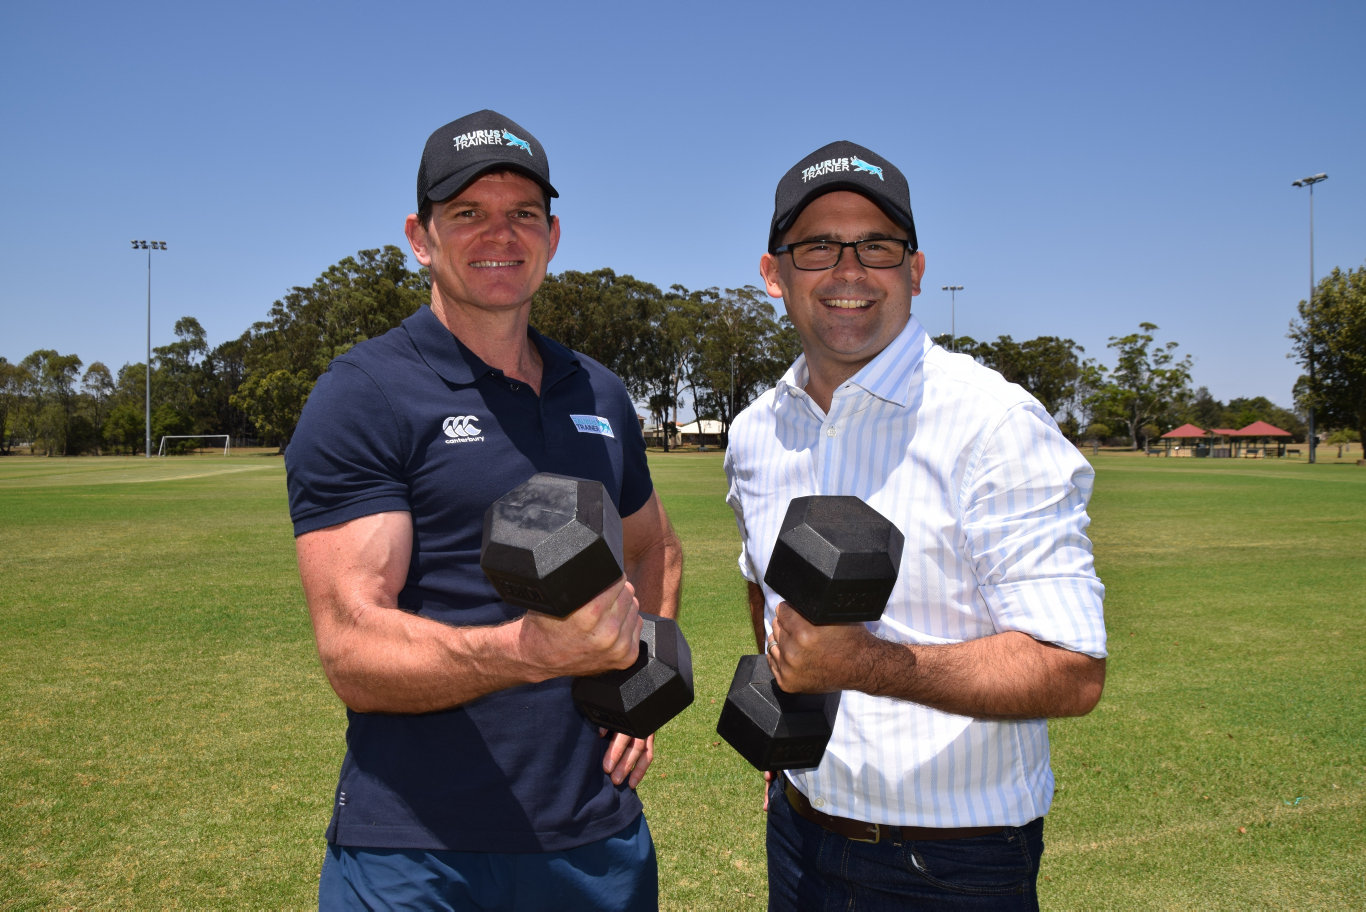 Exercise physiologist Steve Roberts and Member for Toowoomba South David Janetzki MP would like to see more adult exercise equipment in the city's parks.